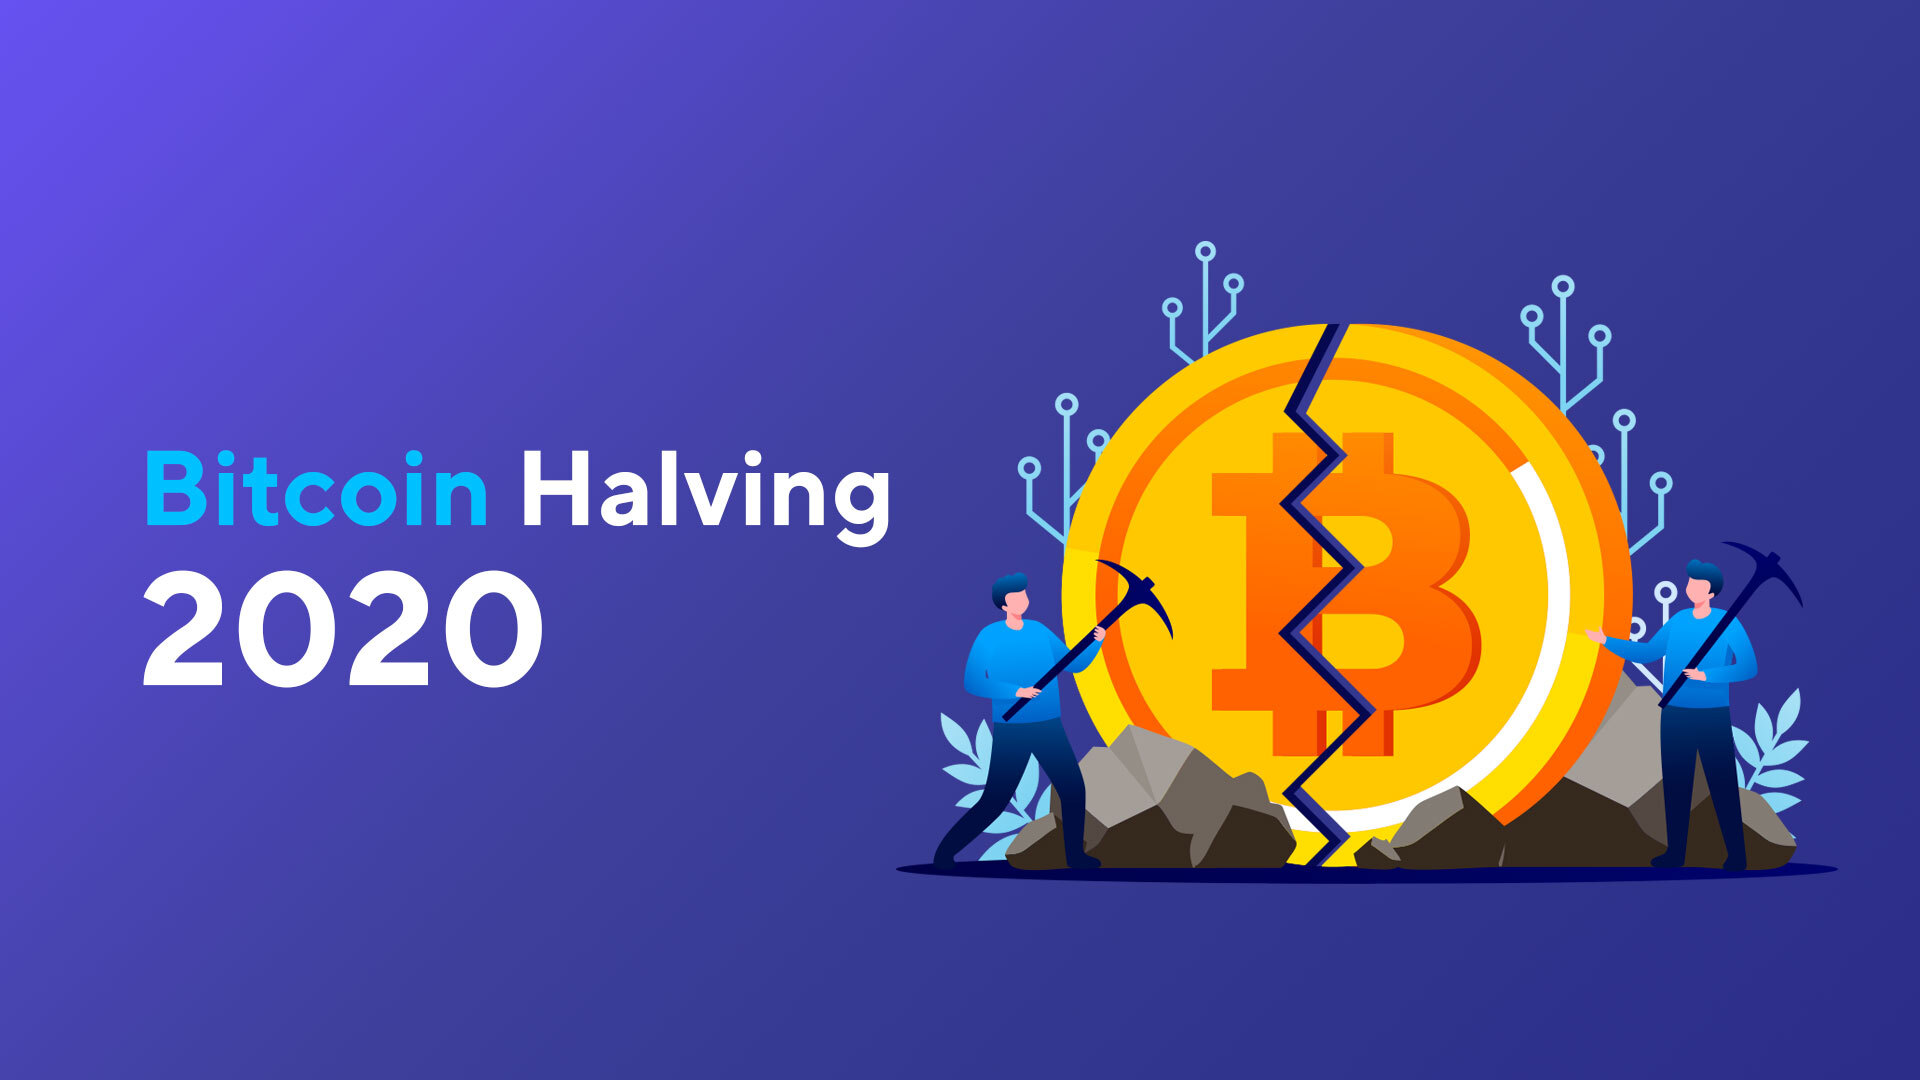 What is Bitcoin Halving: When Will It Happen in 2020